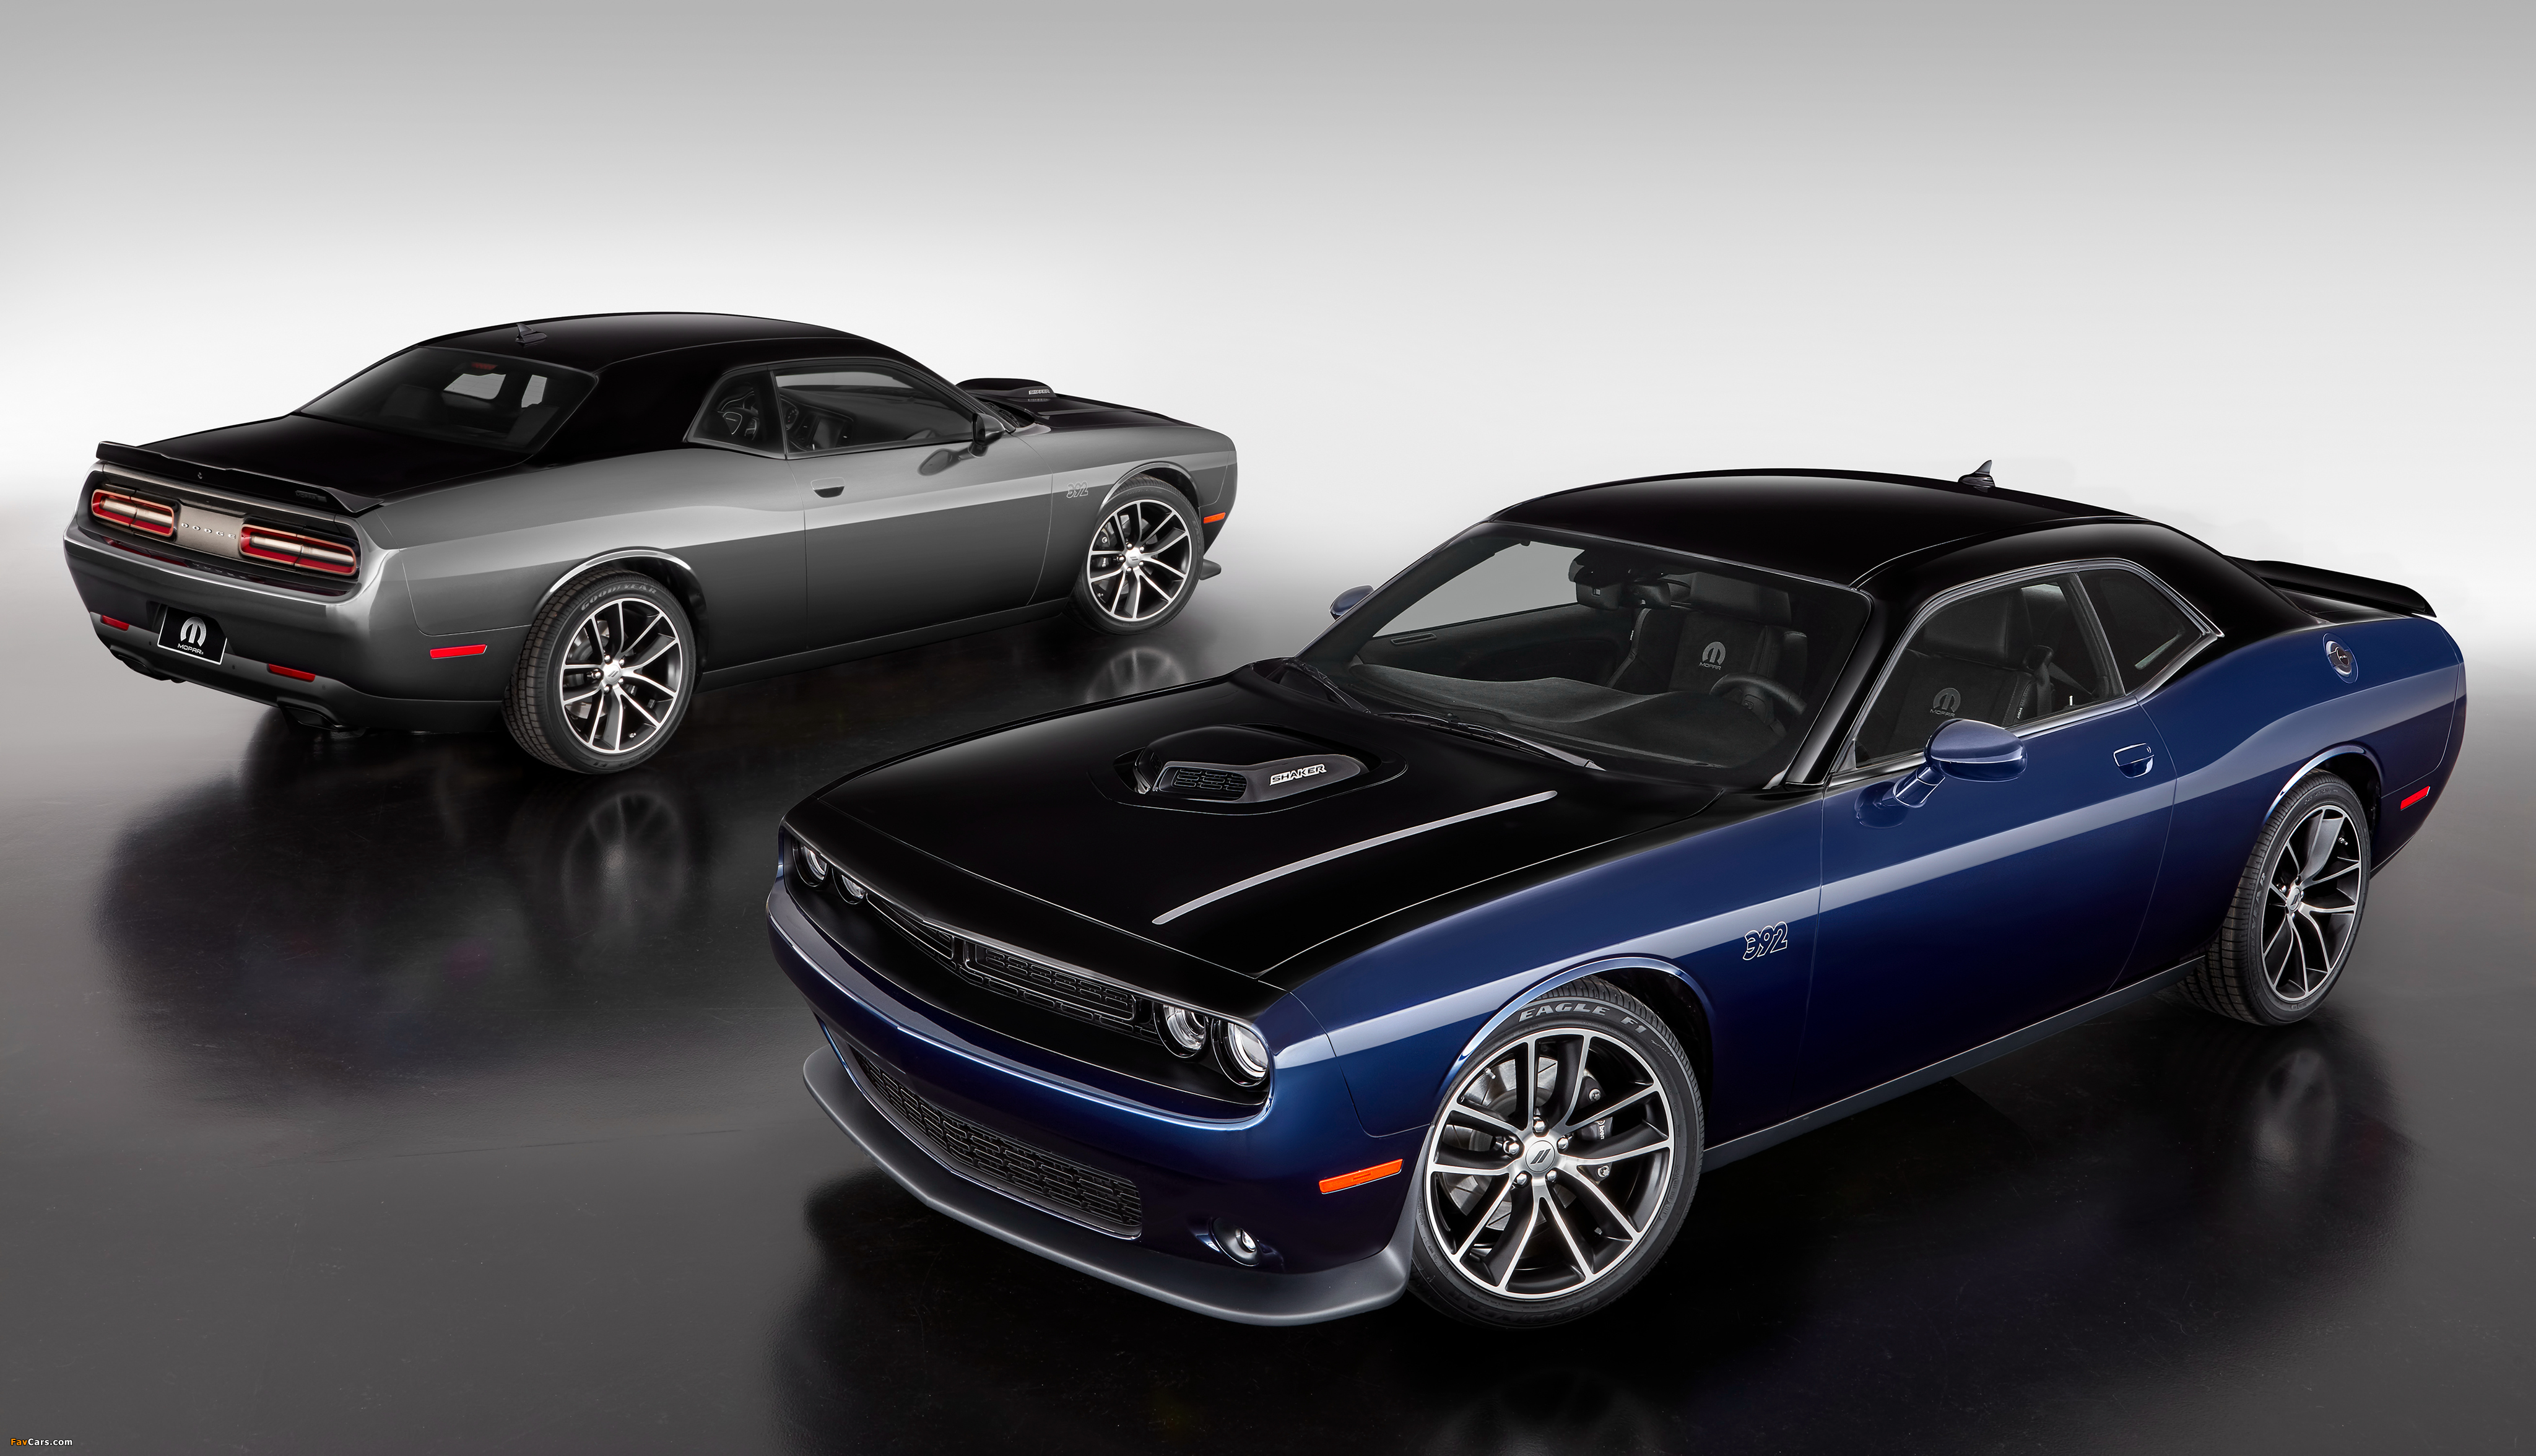 Mopar 17 Dodge Challenger (LC) 2017 wallpapers (4096 x 2352)